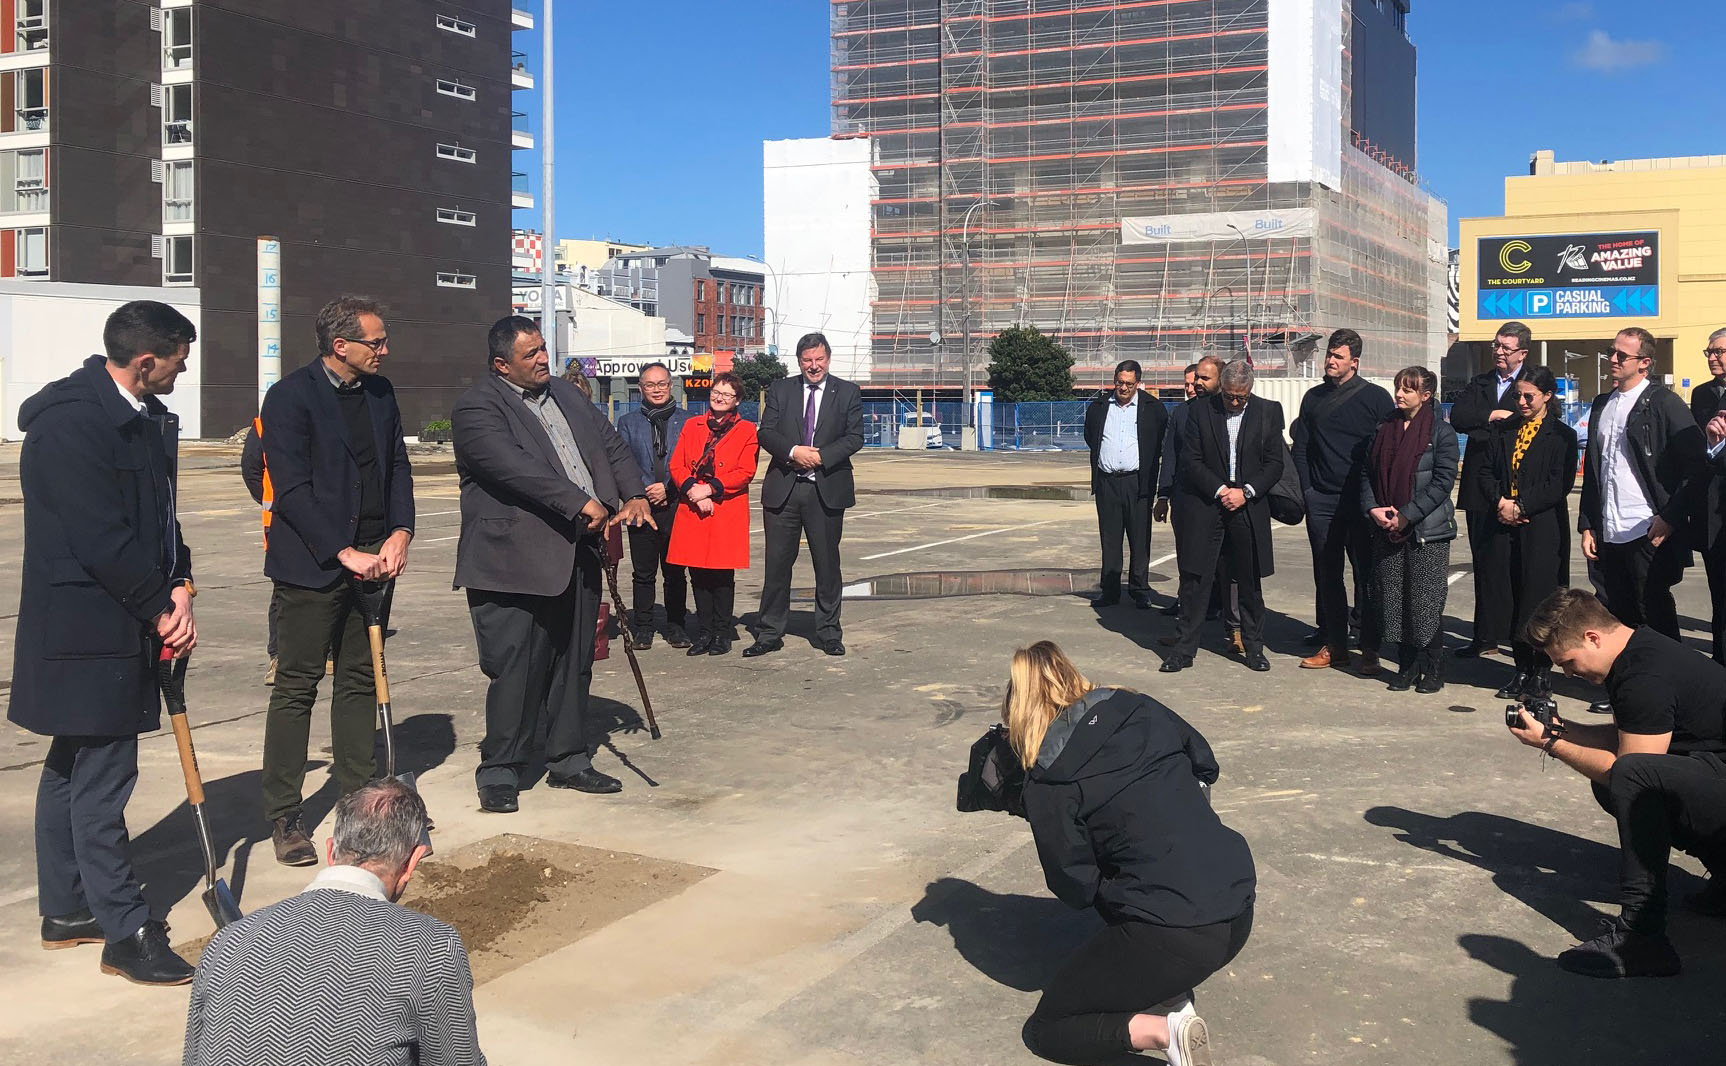 Mayor Justin Lester, David Perks (General Manager of WellingtonNZ) and Kura Moeahu of Te Āti Awa speak and break ground at the site of the new Wellington Convention and Exhibition Centre